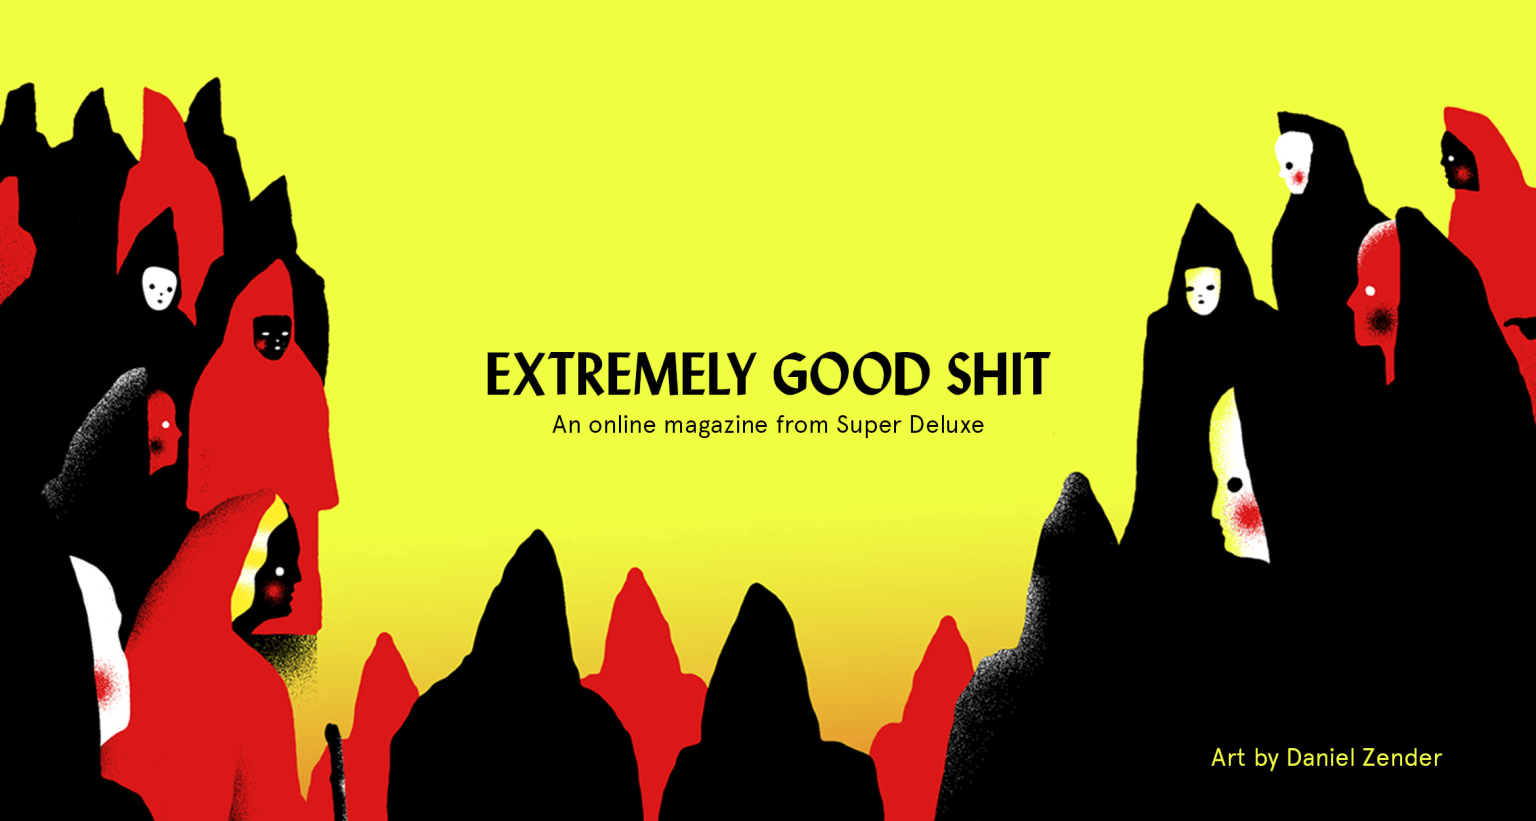 Extremely Good Shit